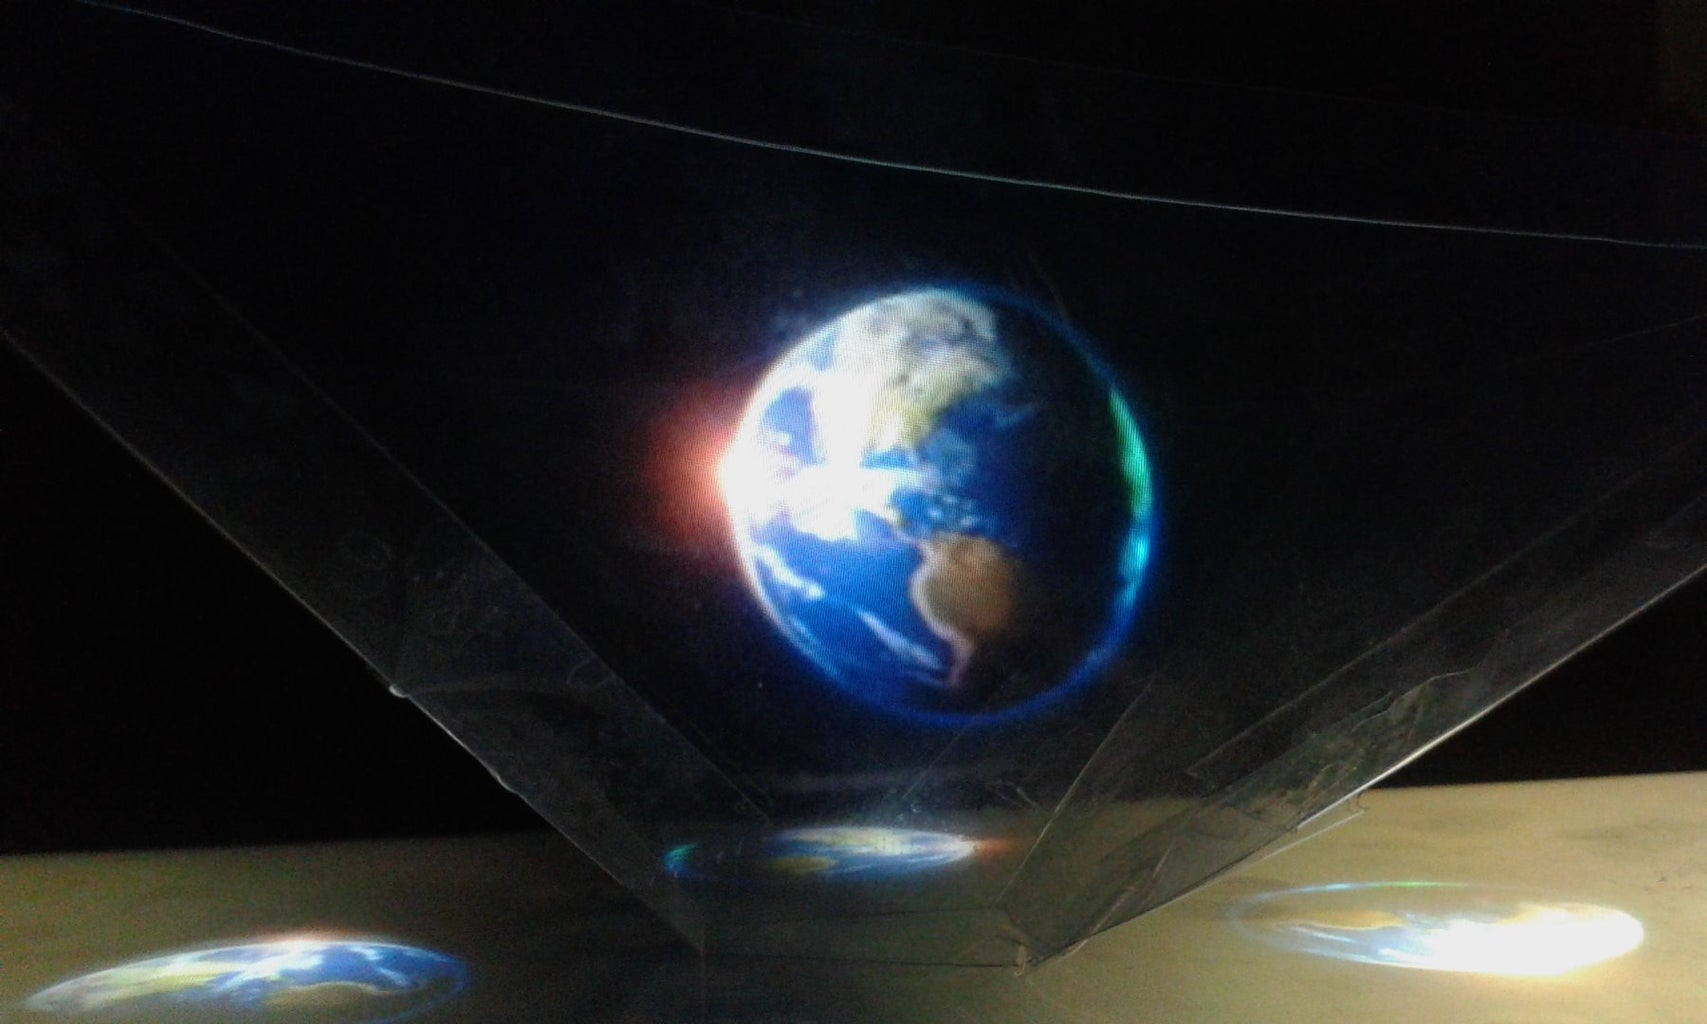 3D HOLOGRAMS PYRAMID-for Smartphones, Tablets and Laptops